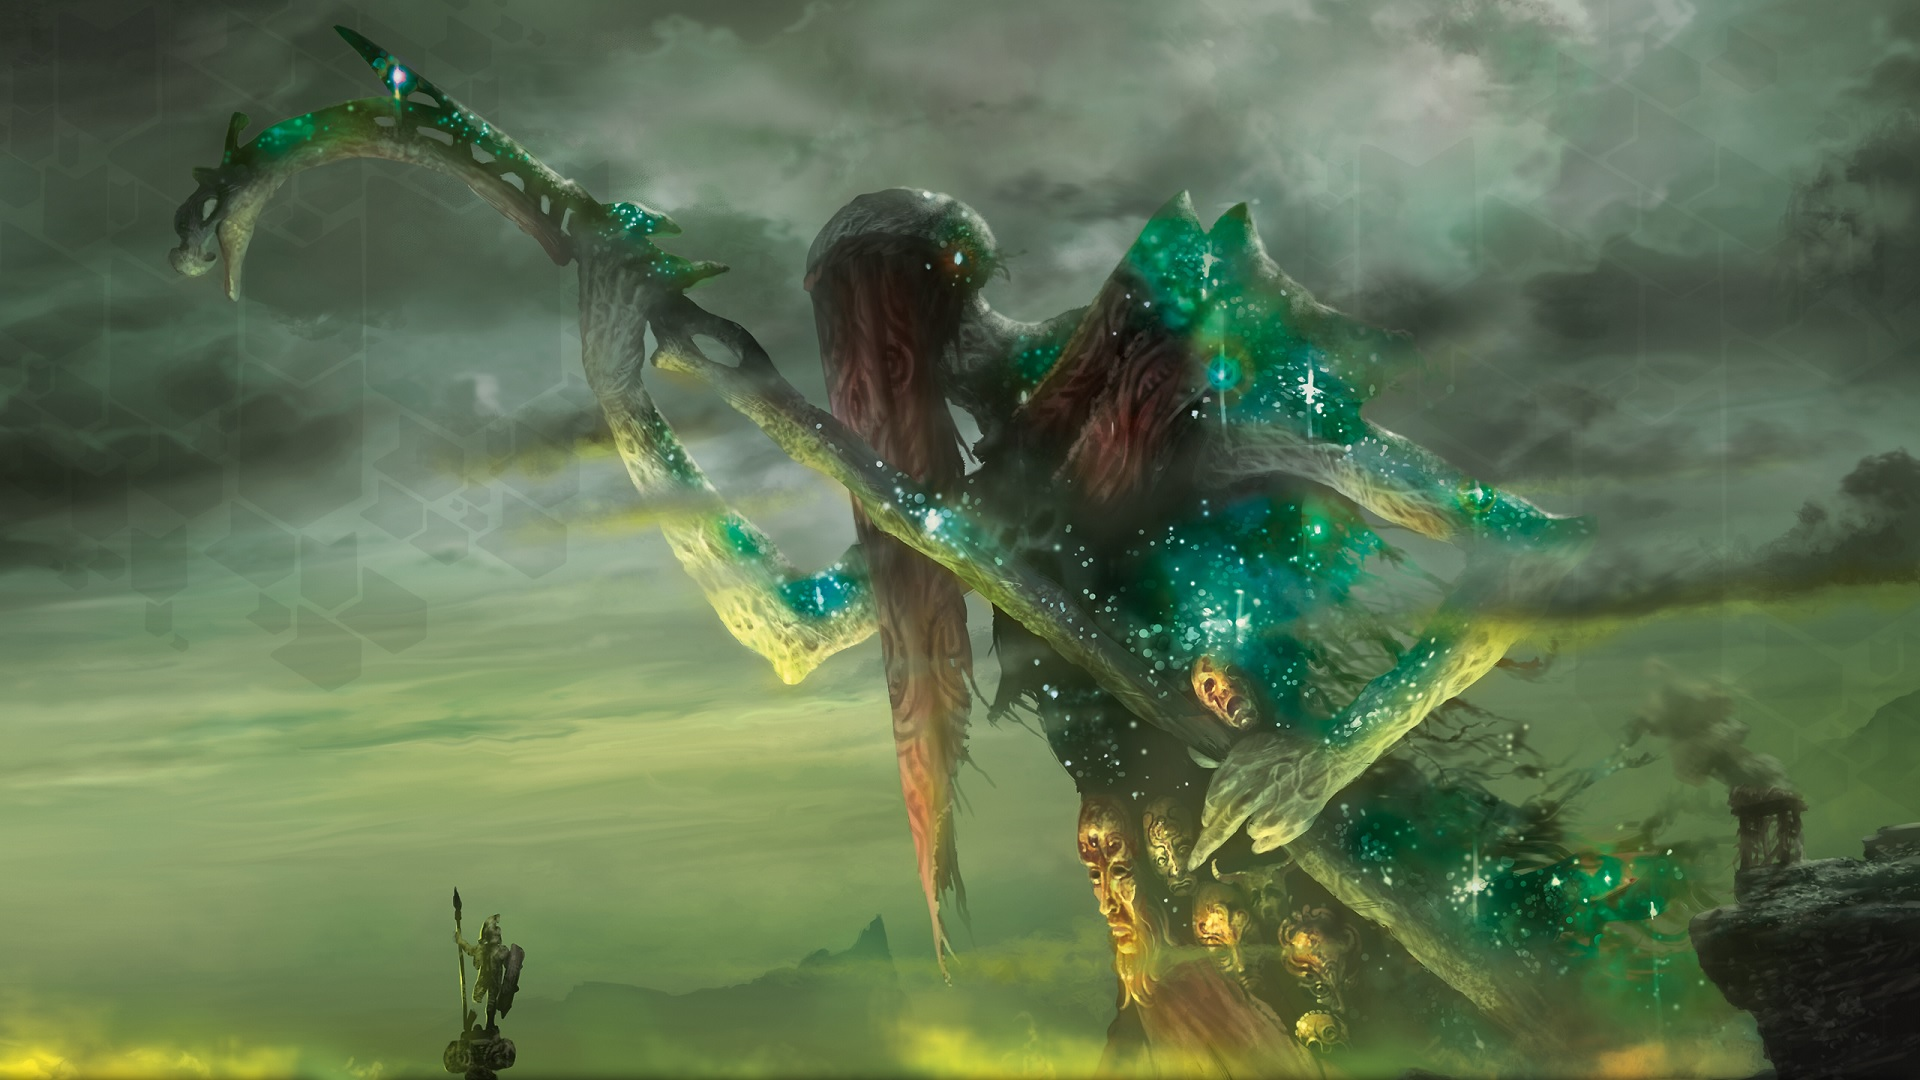 magic the gathering hd backgrounds pictures images